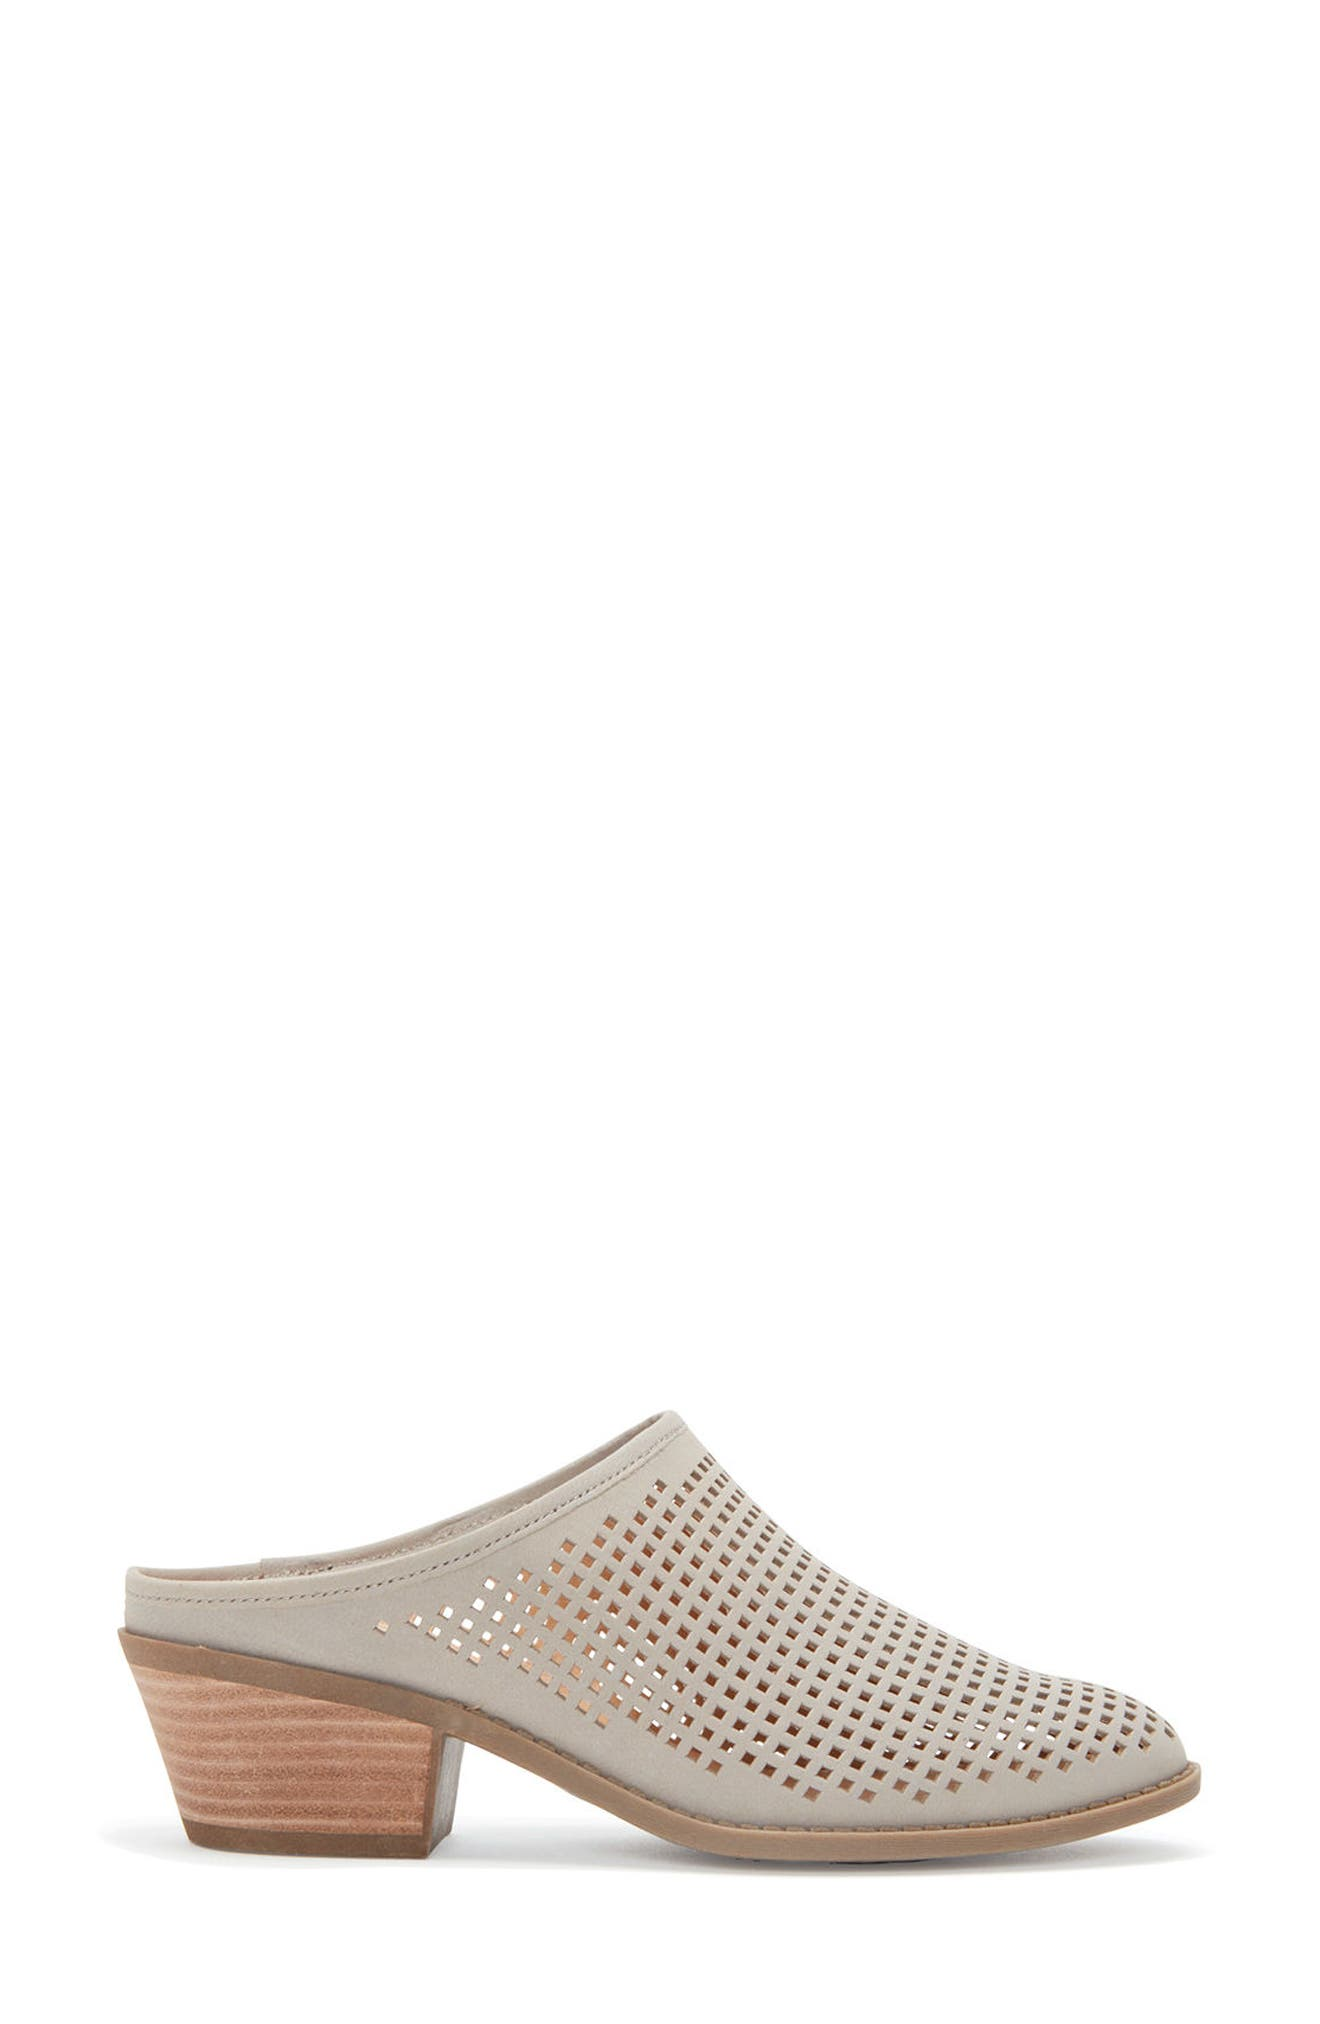 Zara Block Heel Mule,                             Alternate thumbnail 3, color,                             082